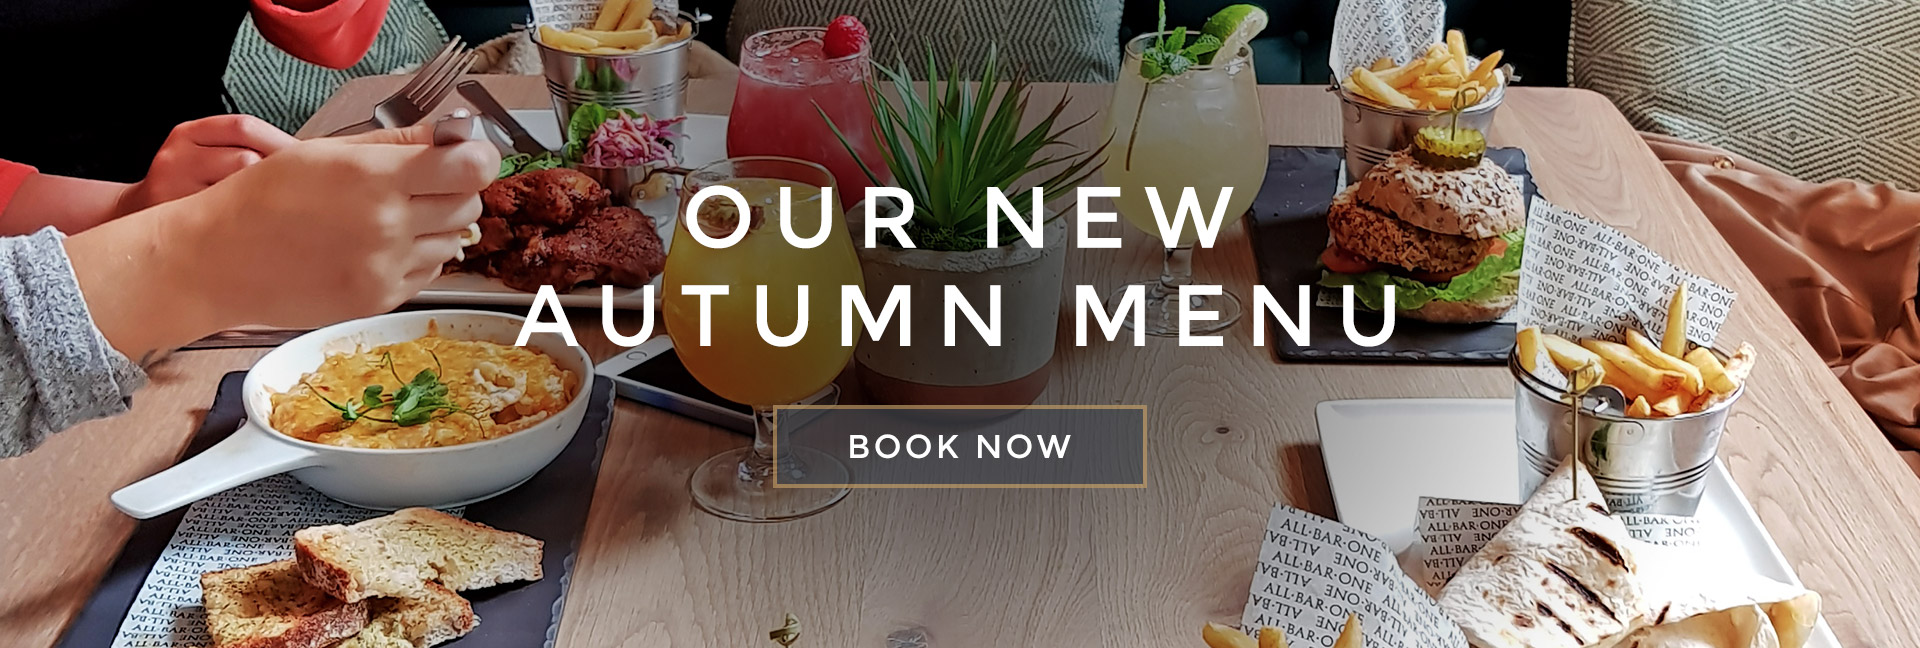 Our new Autumn menu at All Bar One Leicester Square - Book now